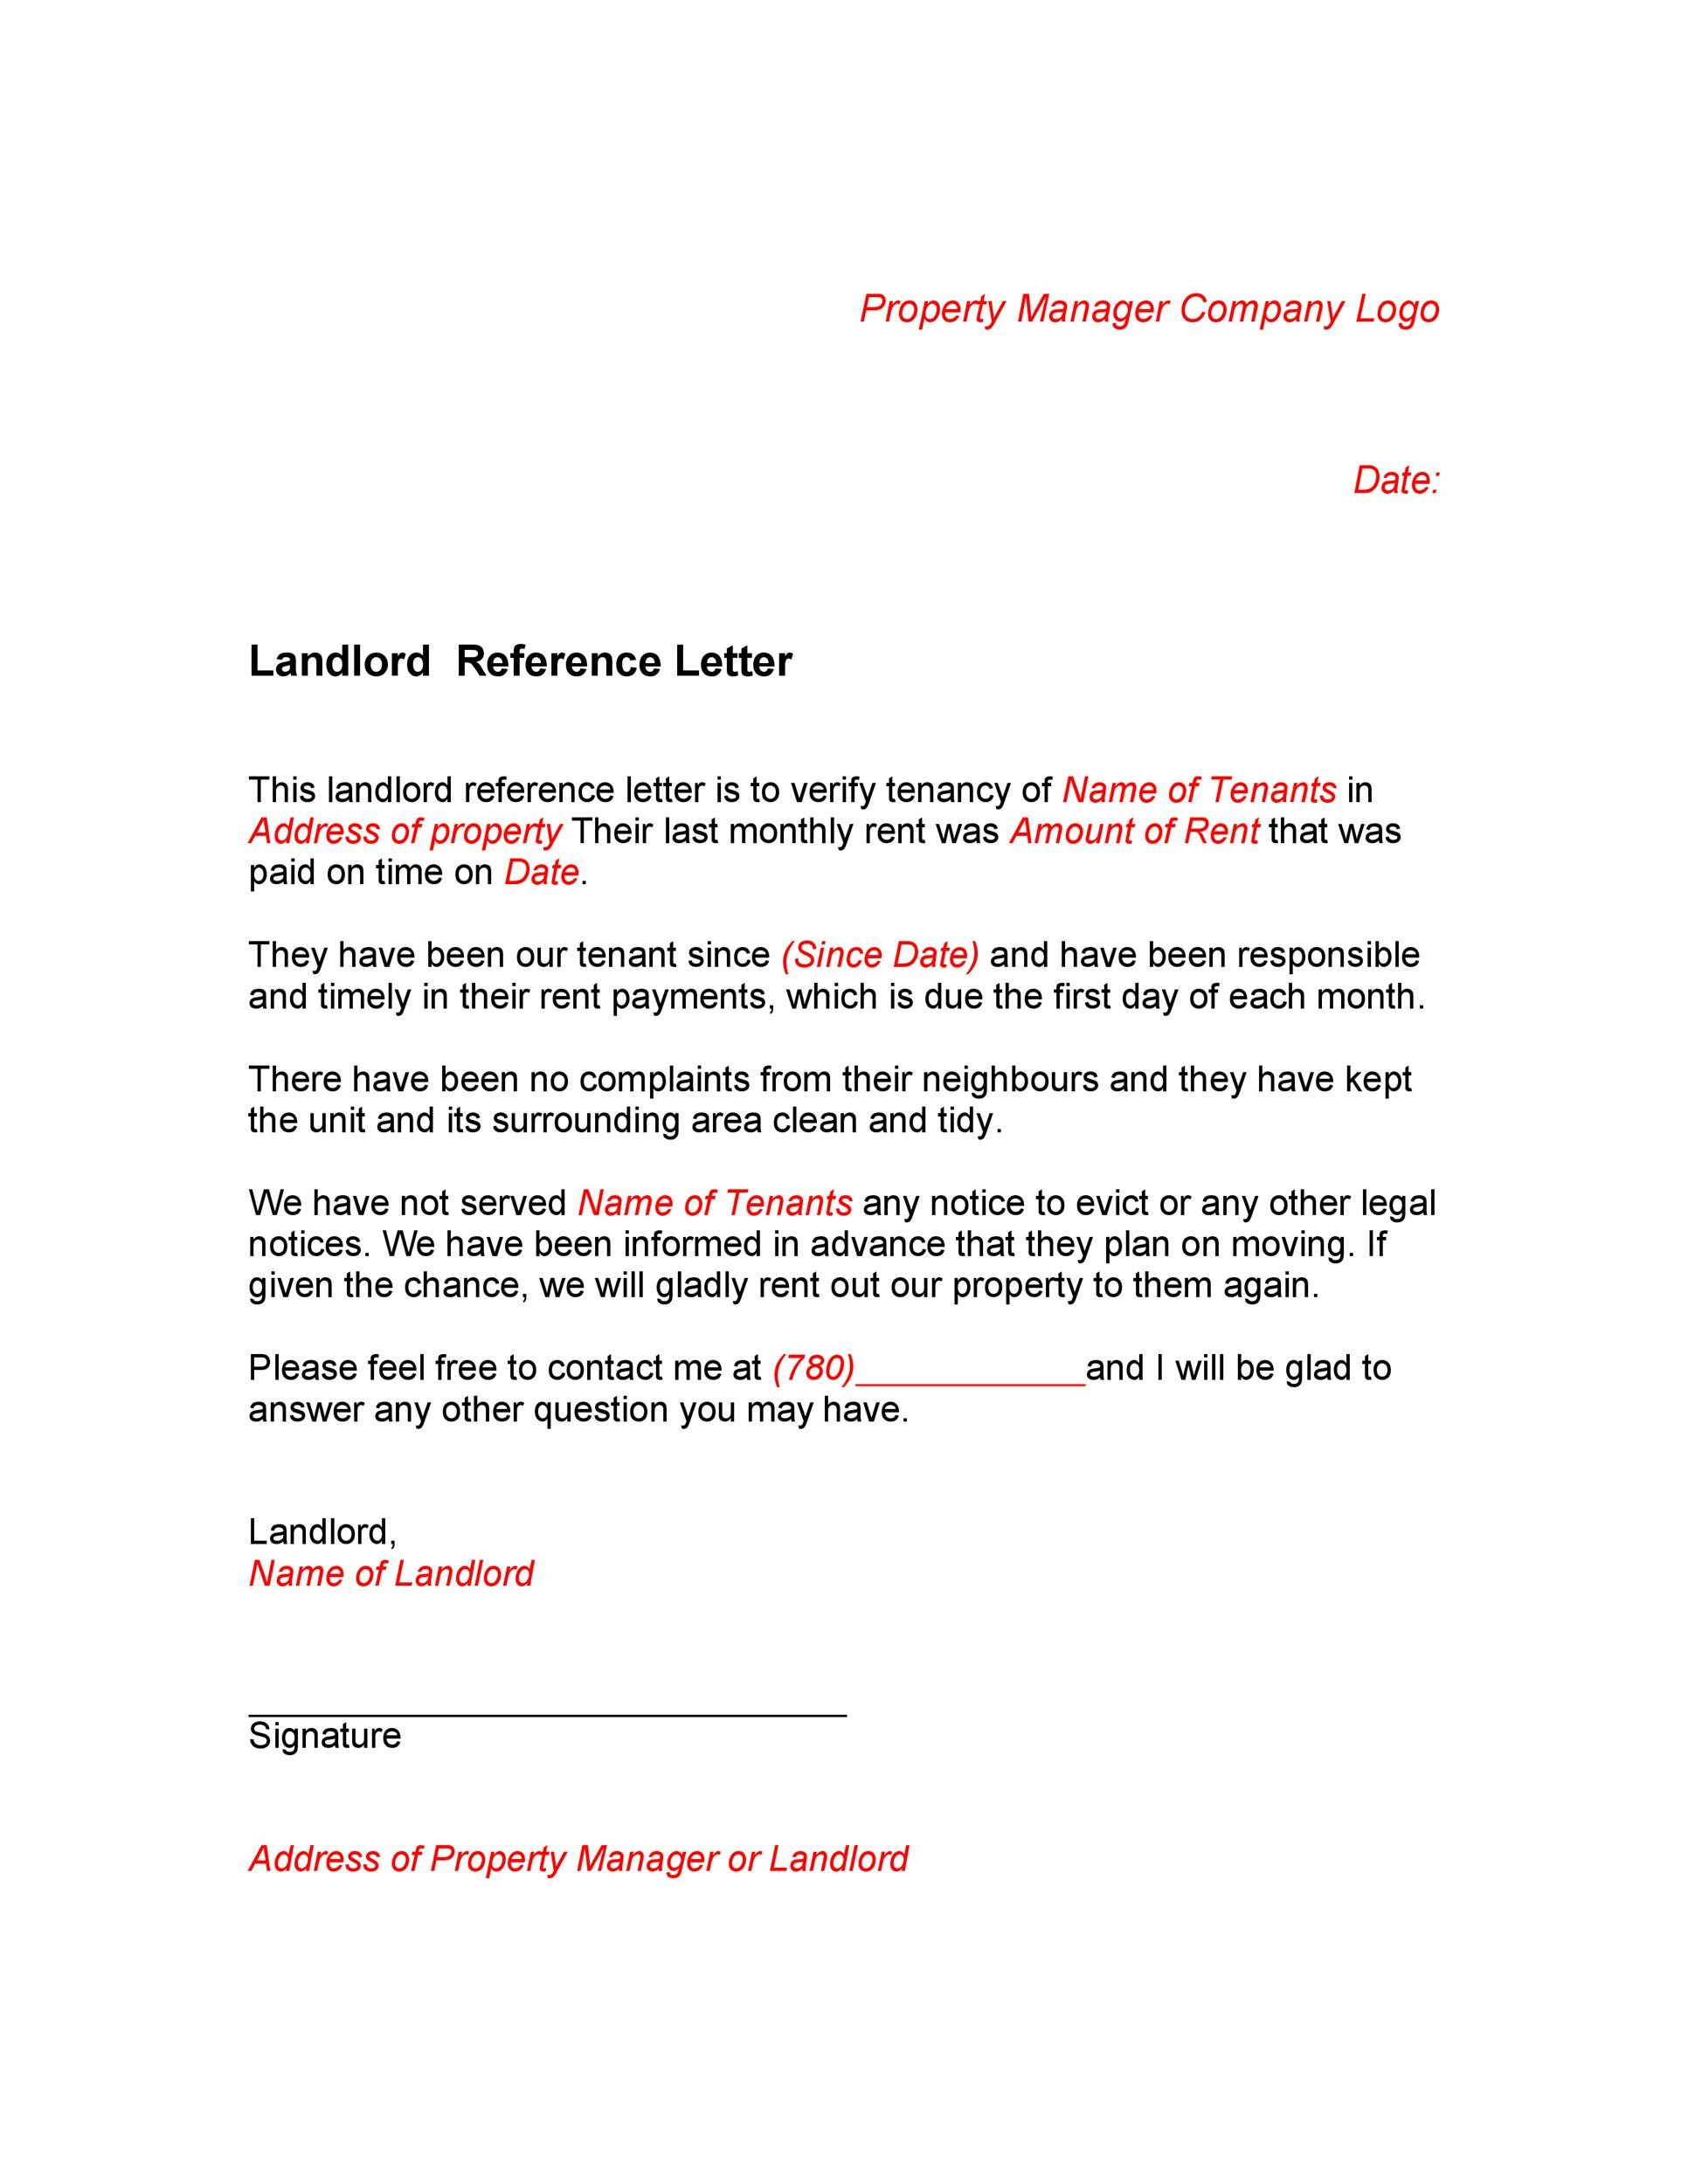 40 landlord reference letters form samples template lab for Reference letter from landlord template